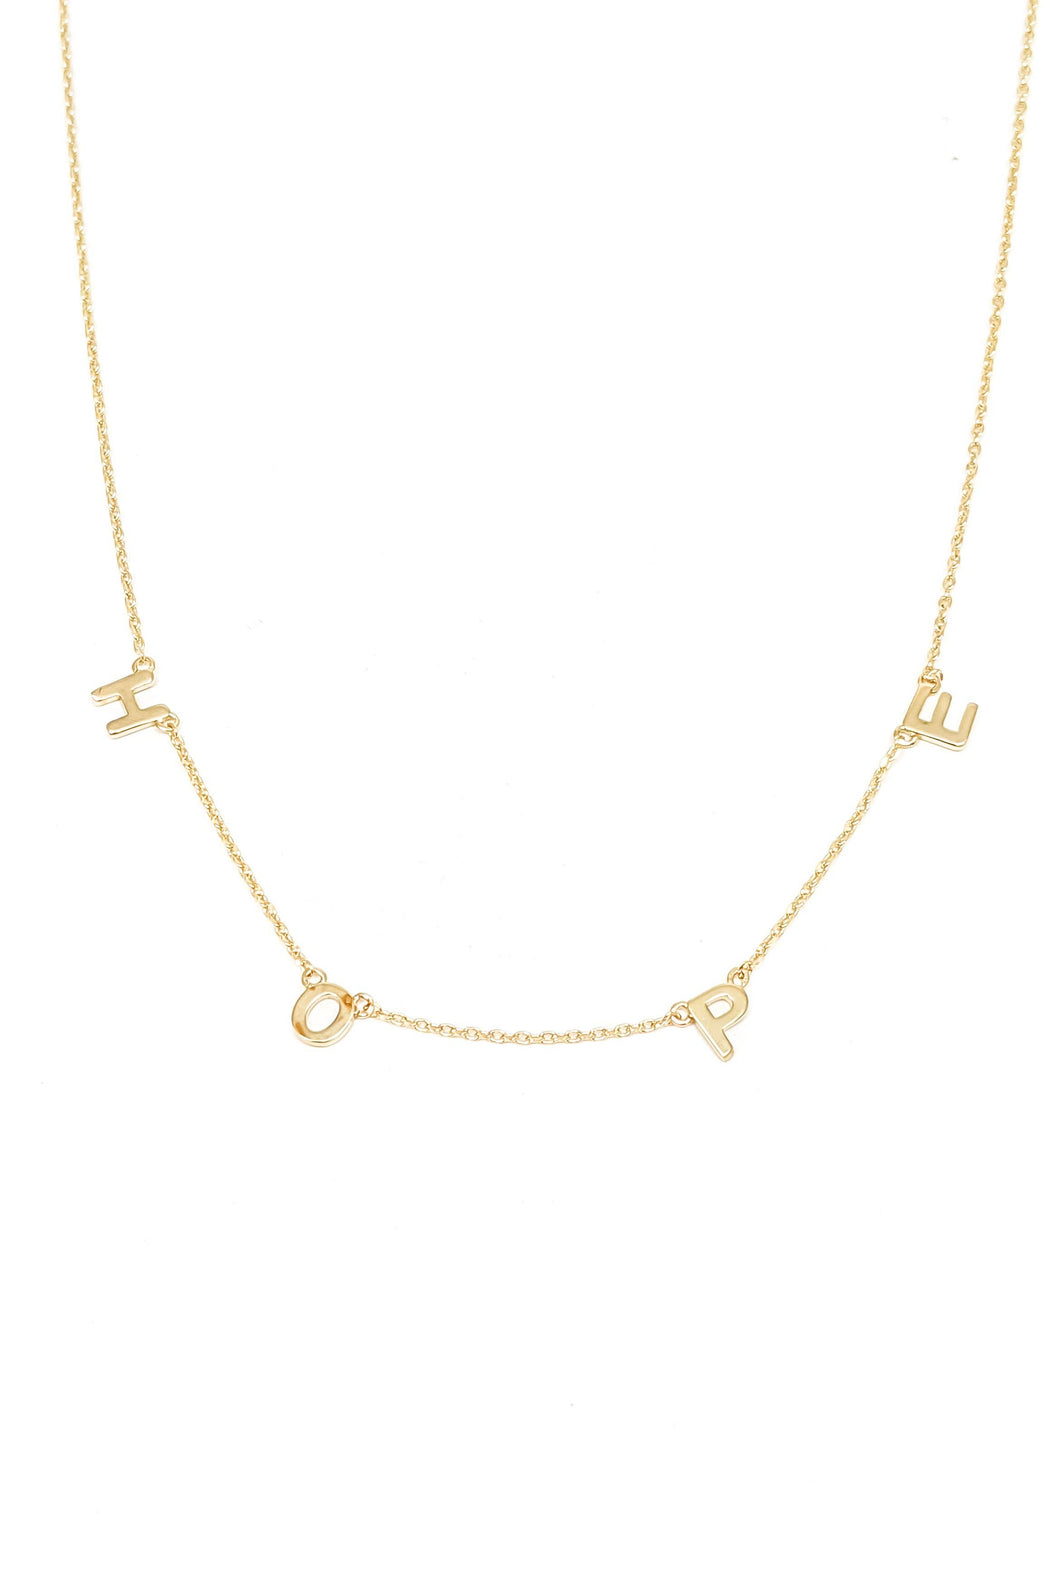 HOPE Word Necklace - GOLD